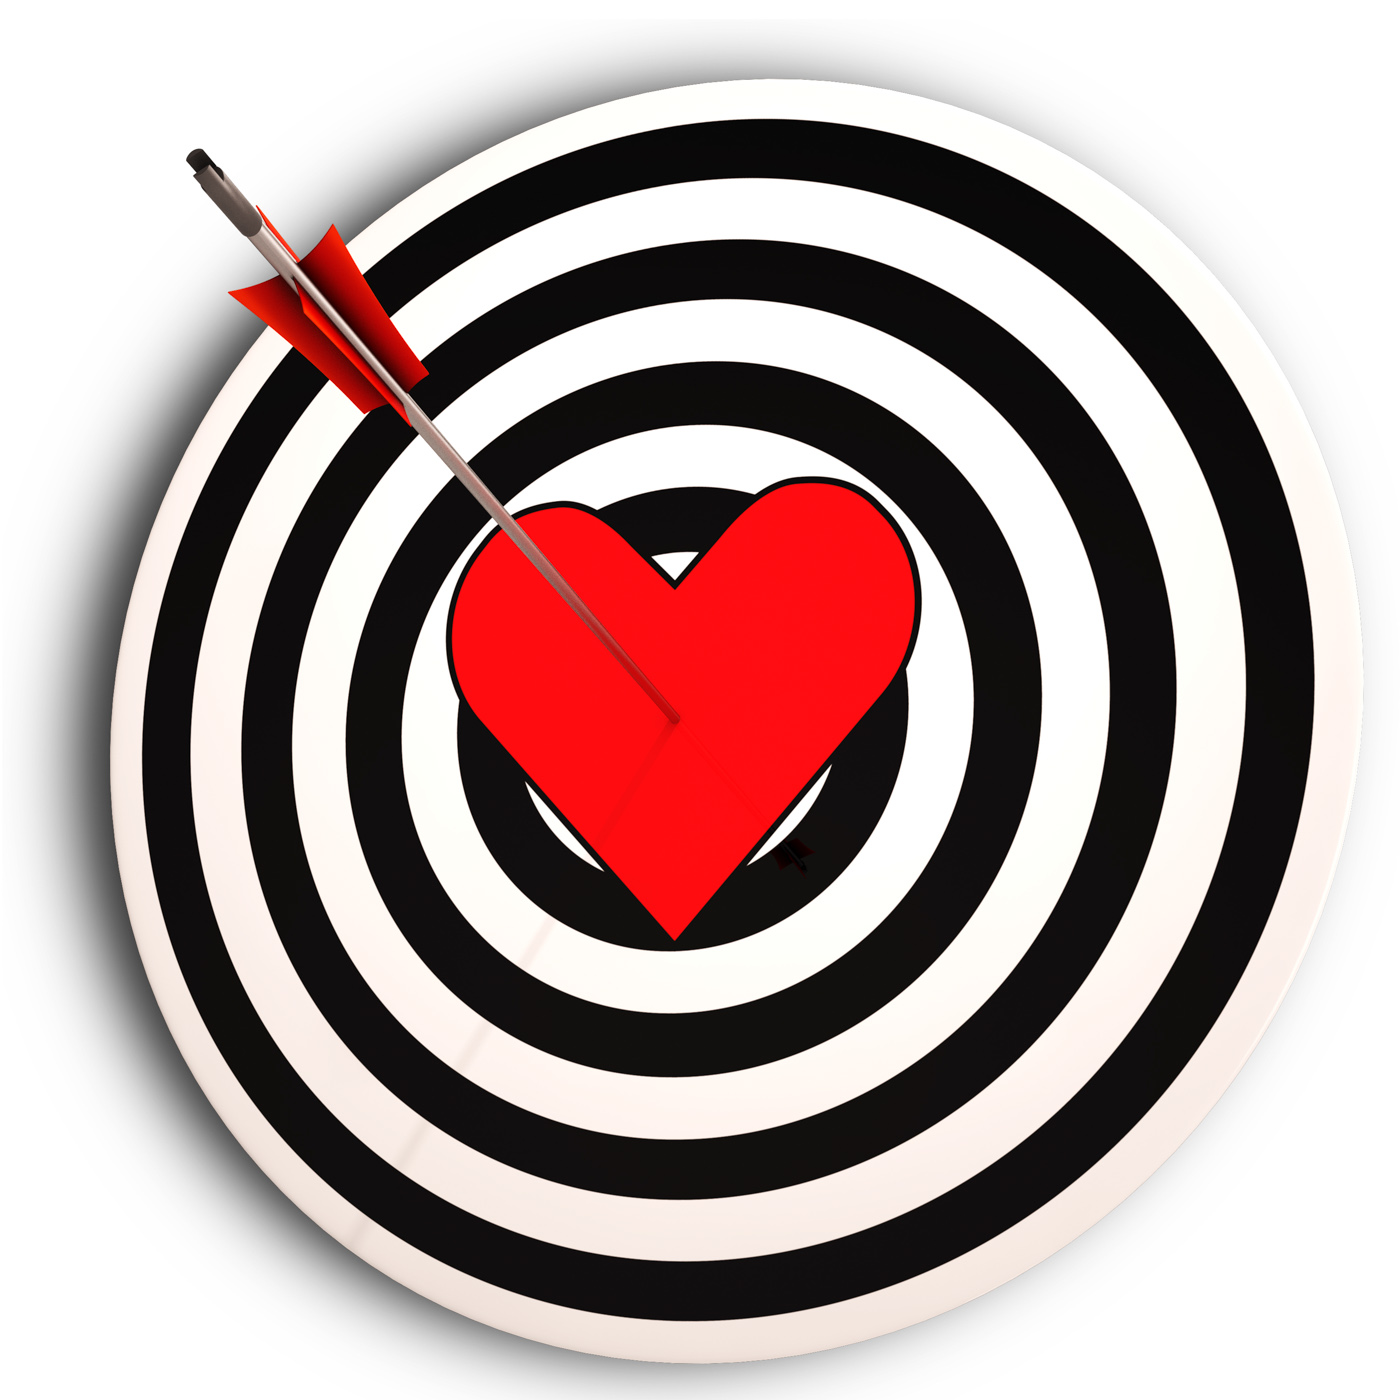 Heart Target Means I Love You Achieved, Achieved, Inlove, Wedding, Valentinesday, HQ Photo